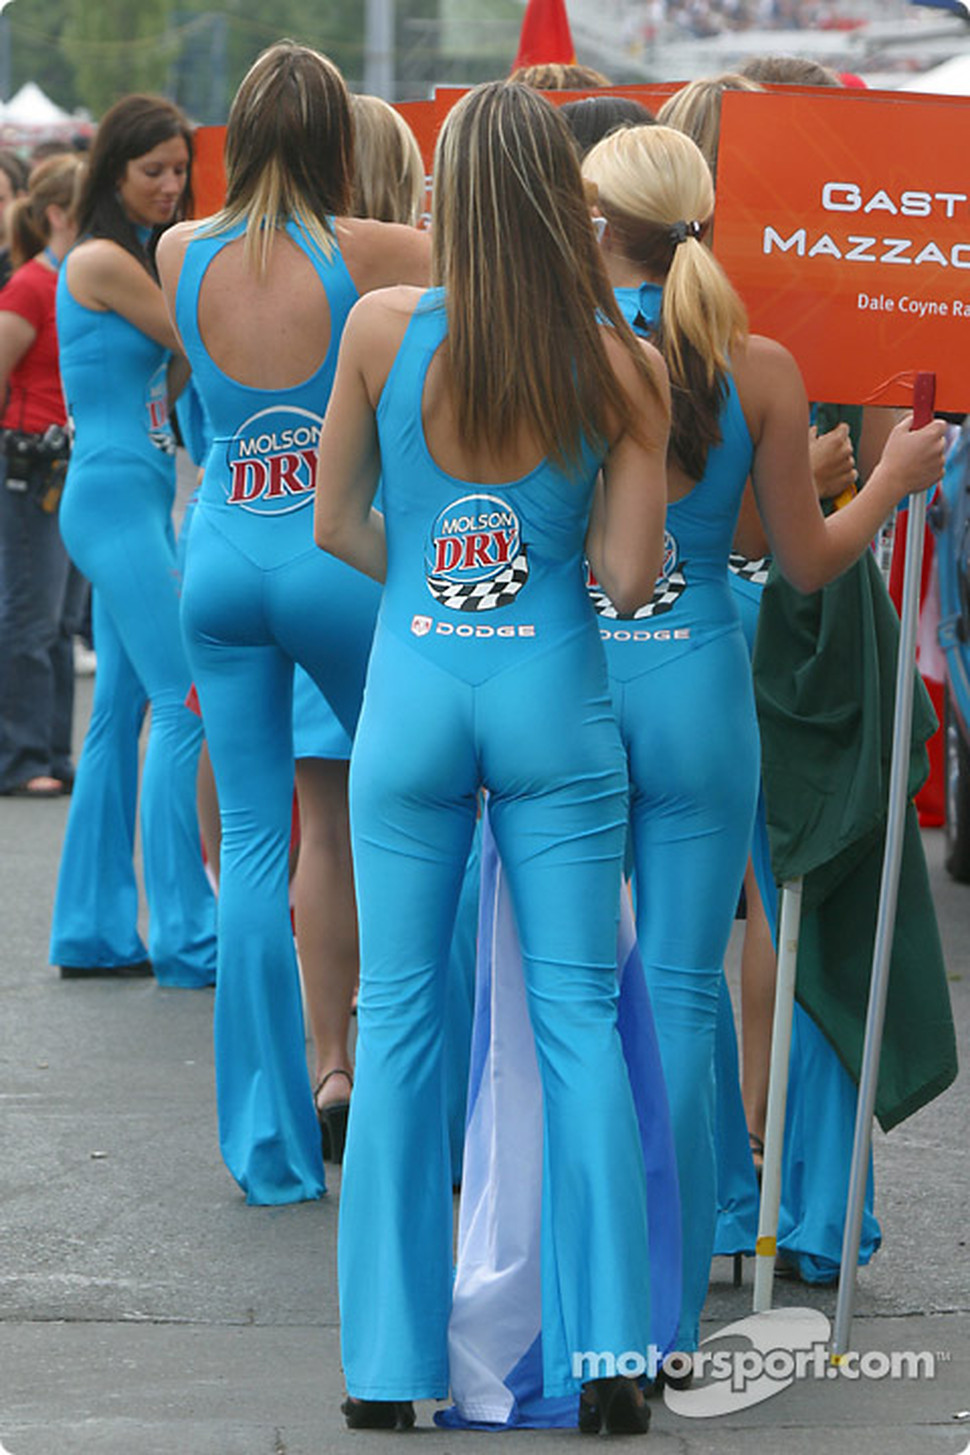 Molson Dry girl wait for drivers presentation